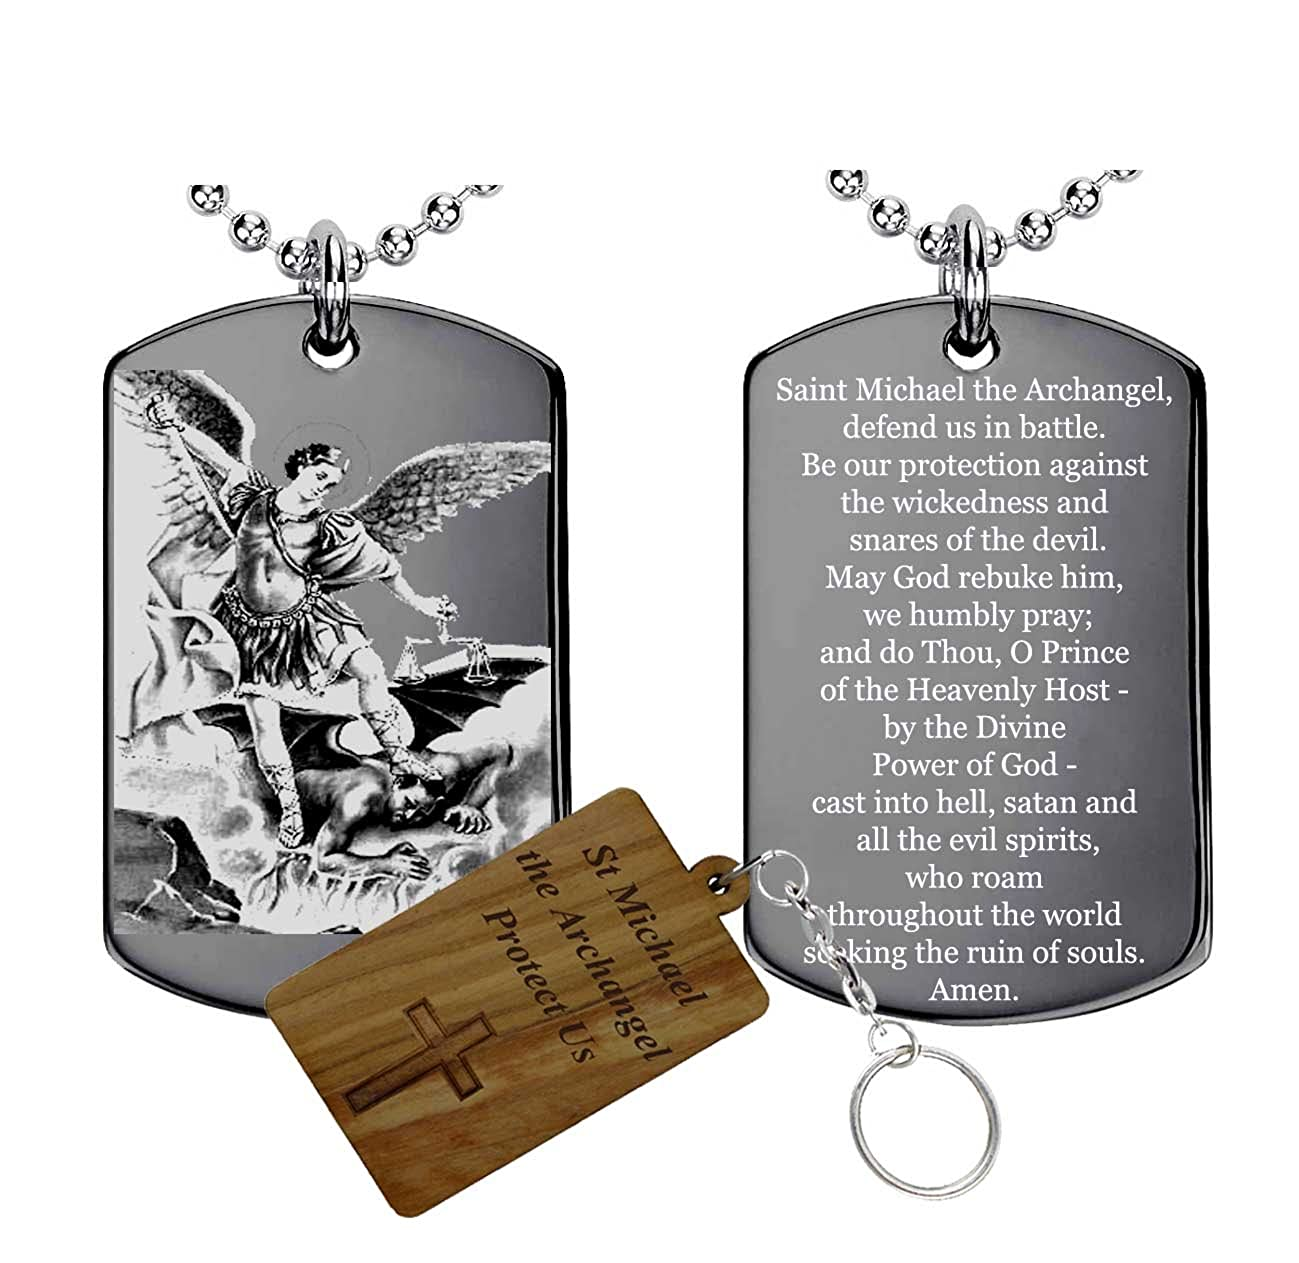 Engravable-Gifts St Michael Pendant(Made in the Holy Land israel st michael  Homeland) the archangel prayer-Medal-Necklace  acd13a36a5